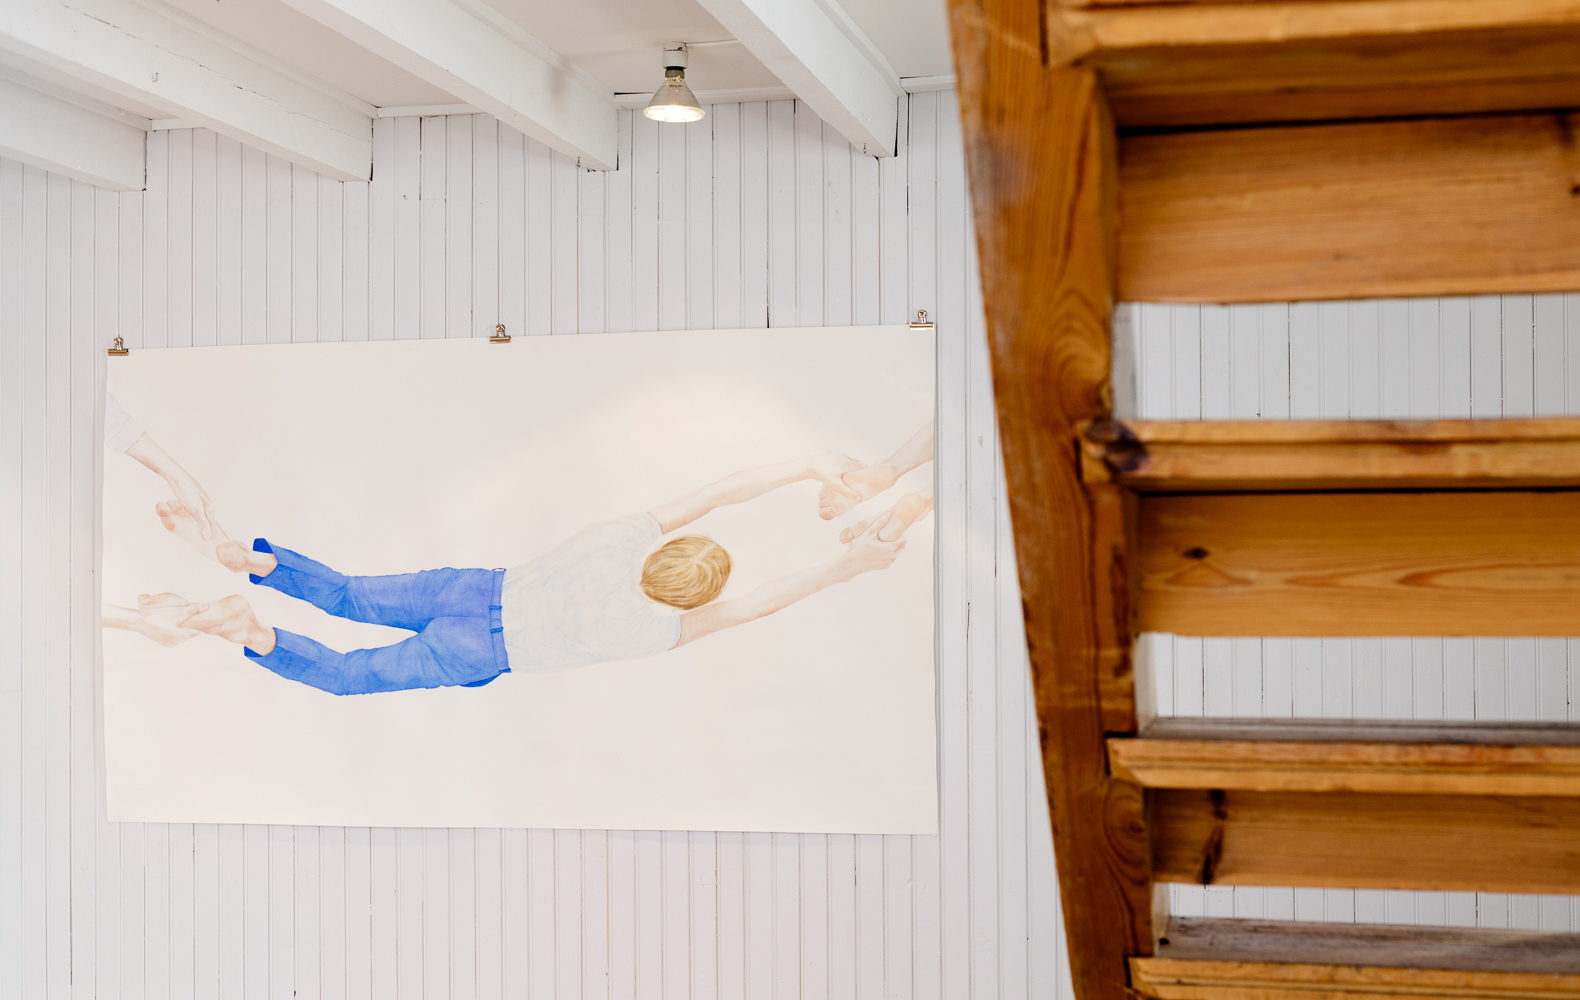 Installation view from 'Connections' at POM Gallery. (Image: 'Bridge'. Watercolor on paper 112,5 x 200 cm)